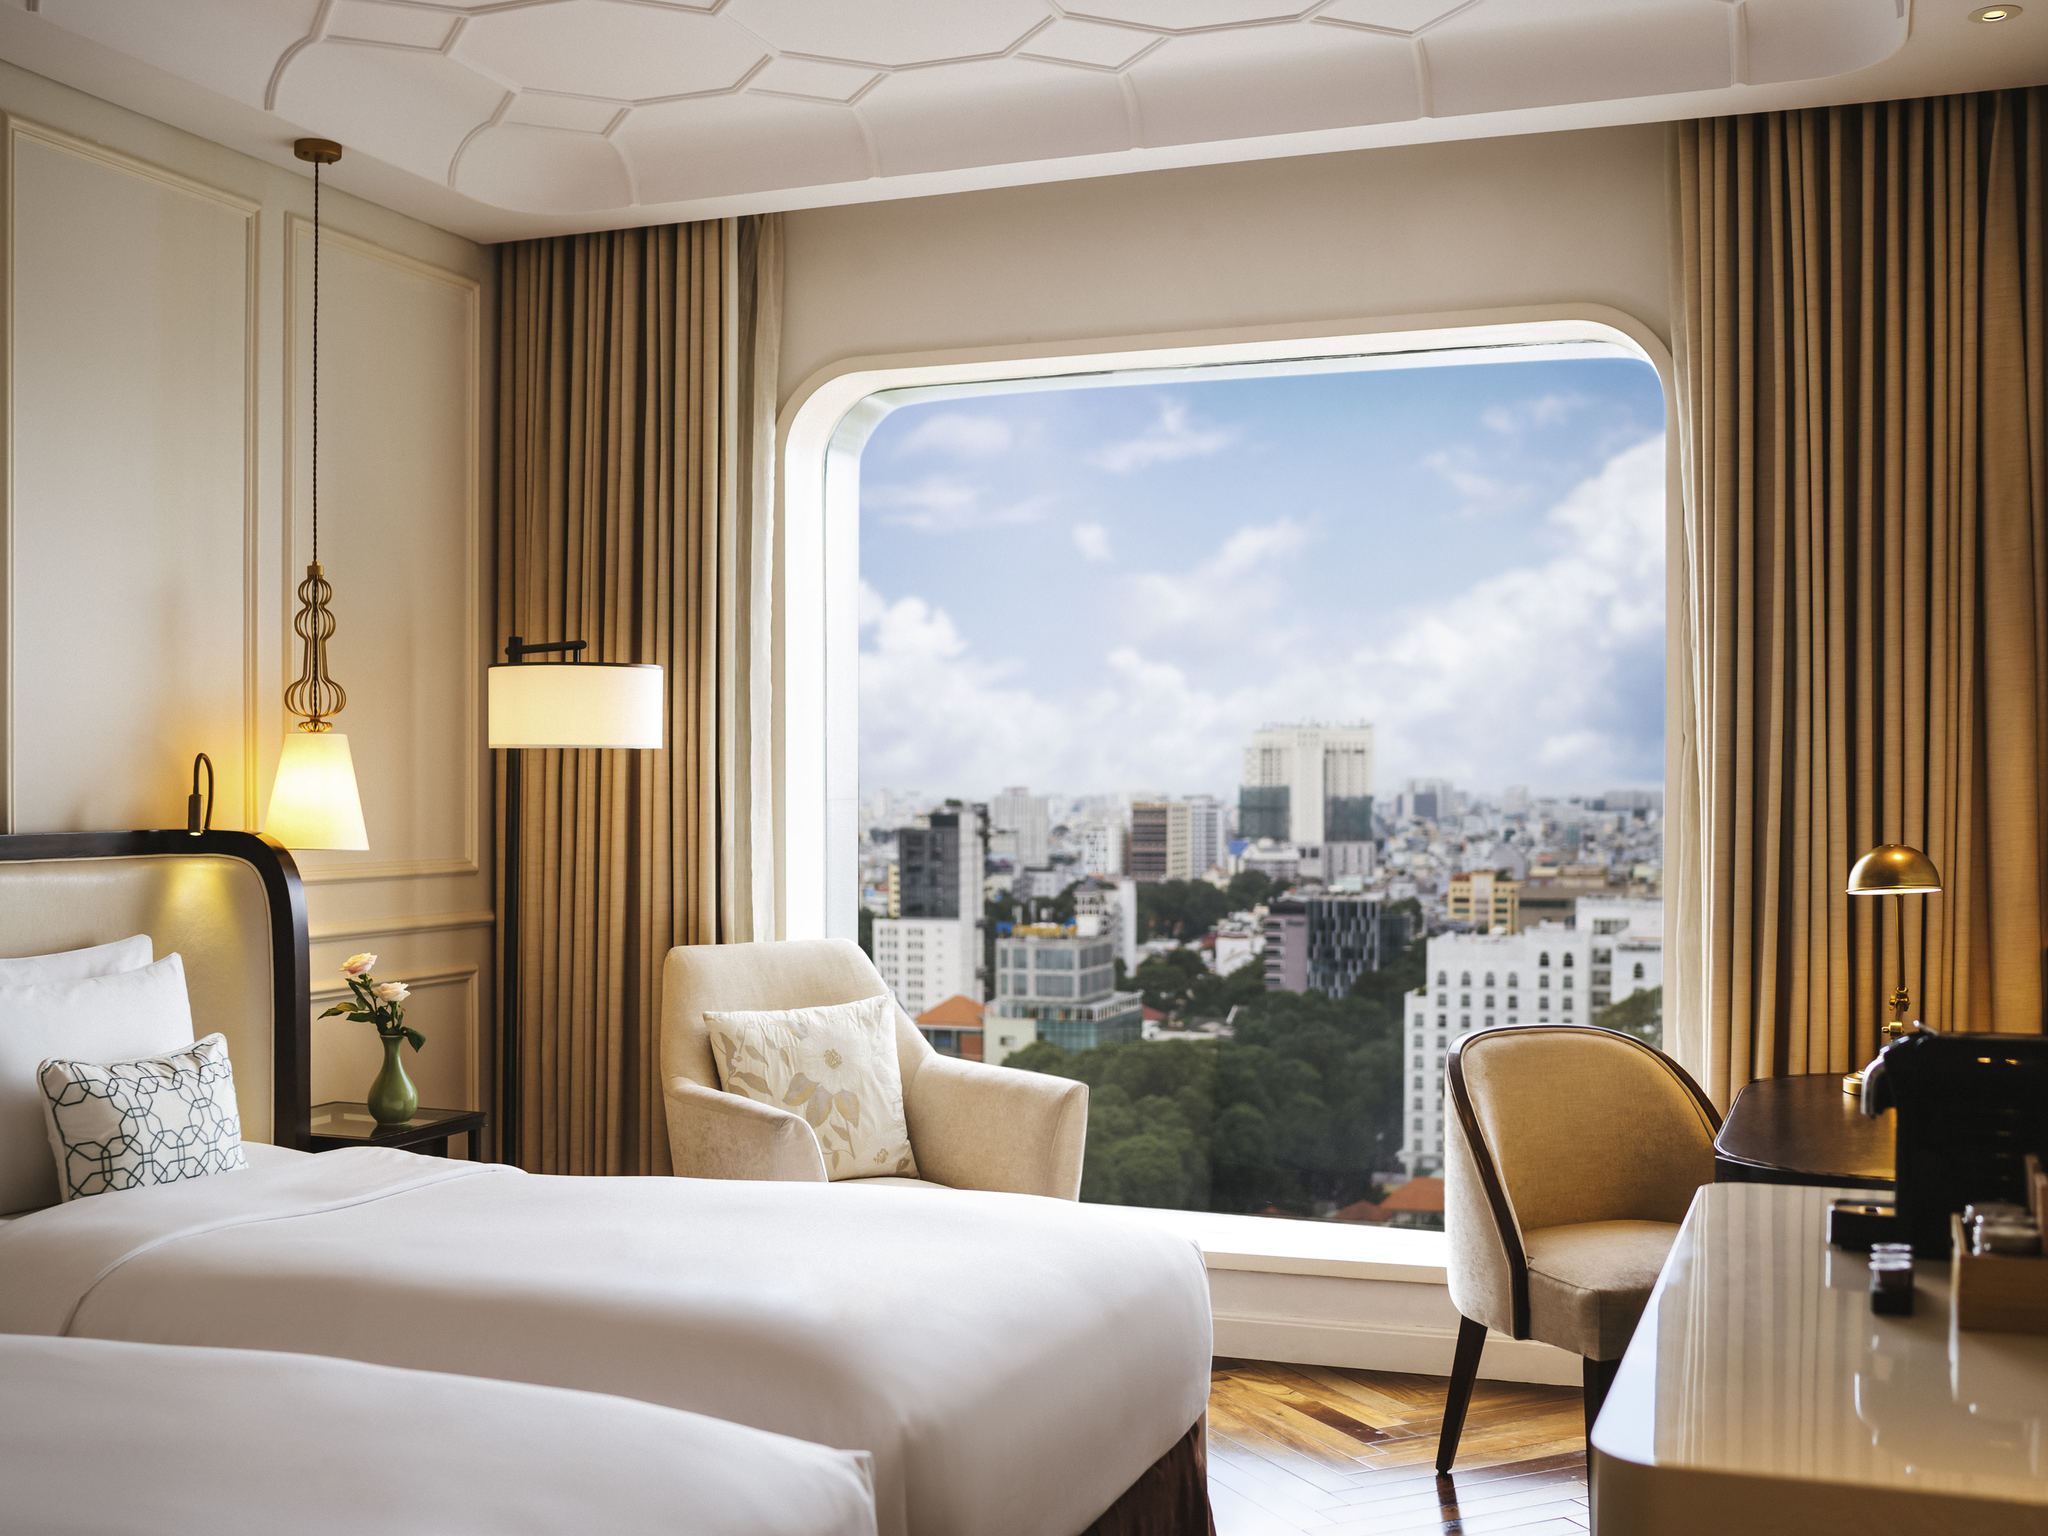 Hotel in HO CHI MINH CITY - Hotel des Arts Saigon - MGallery Collection